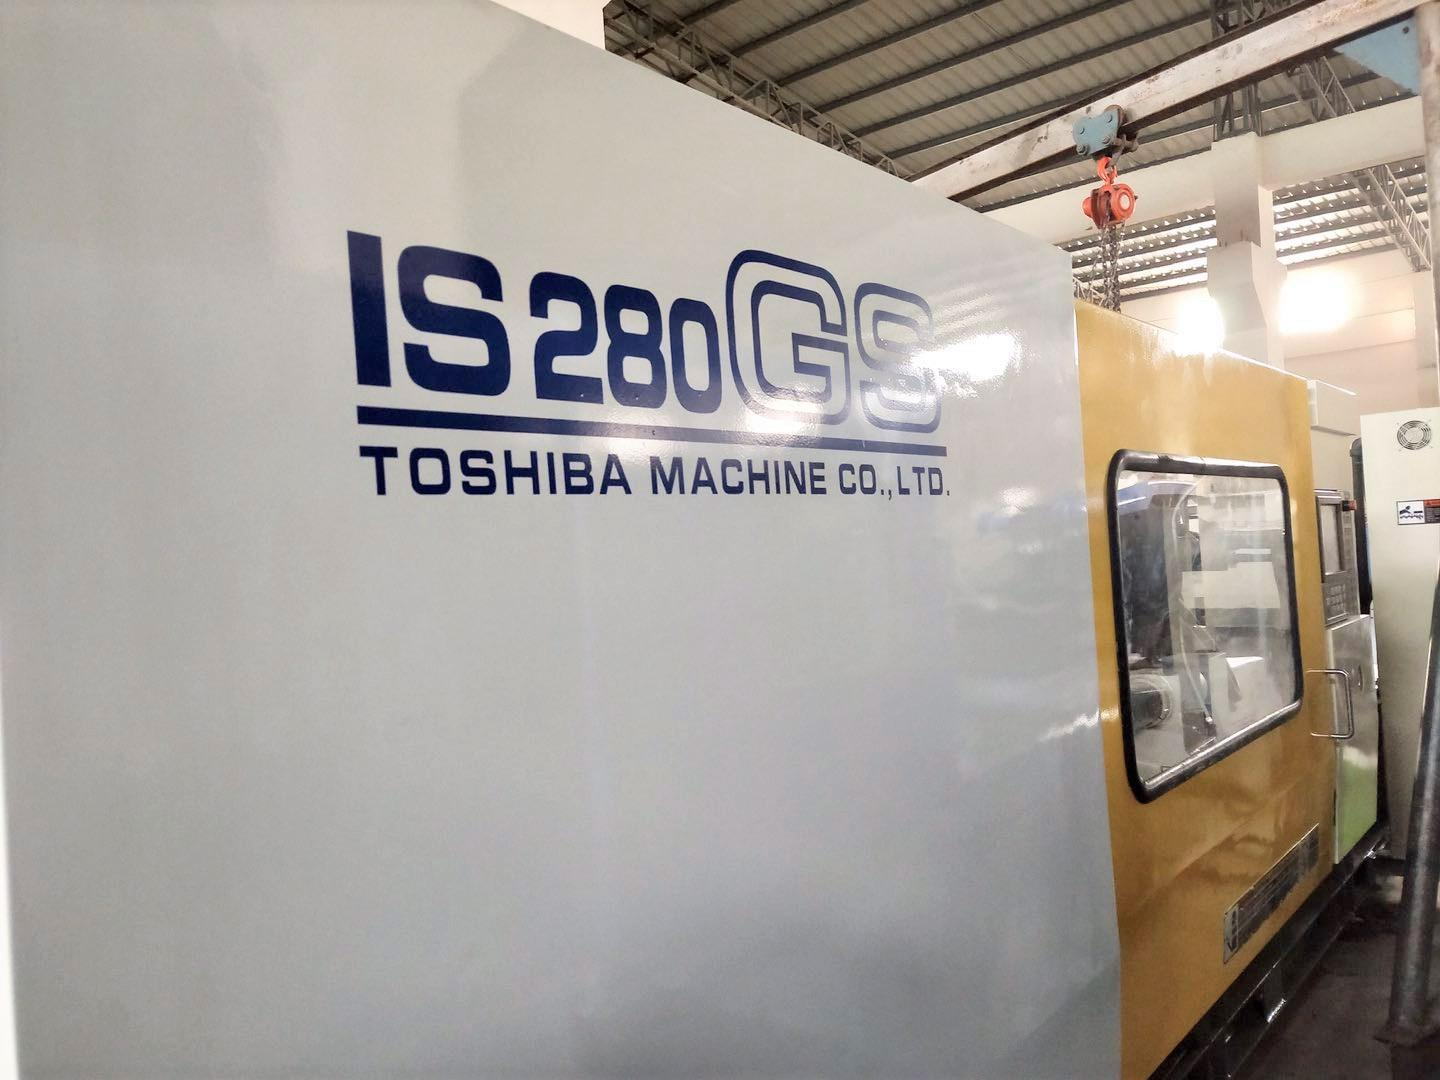 Toshiba 280t IS280GS (V21 Control) Used Plastic Injection Molding Machine